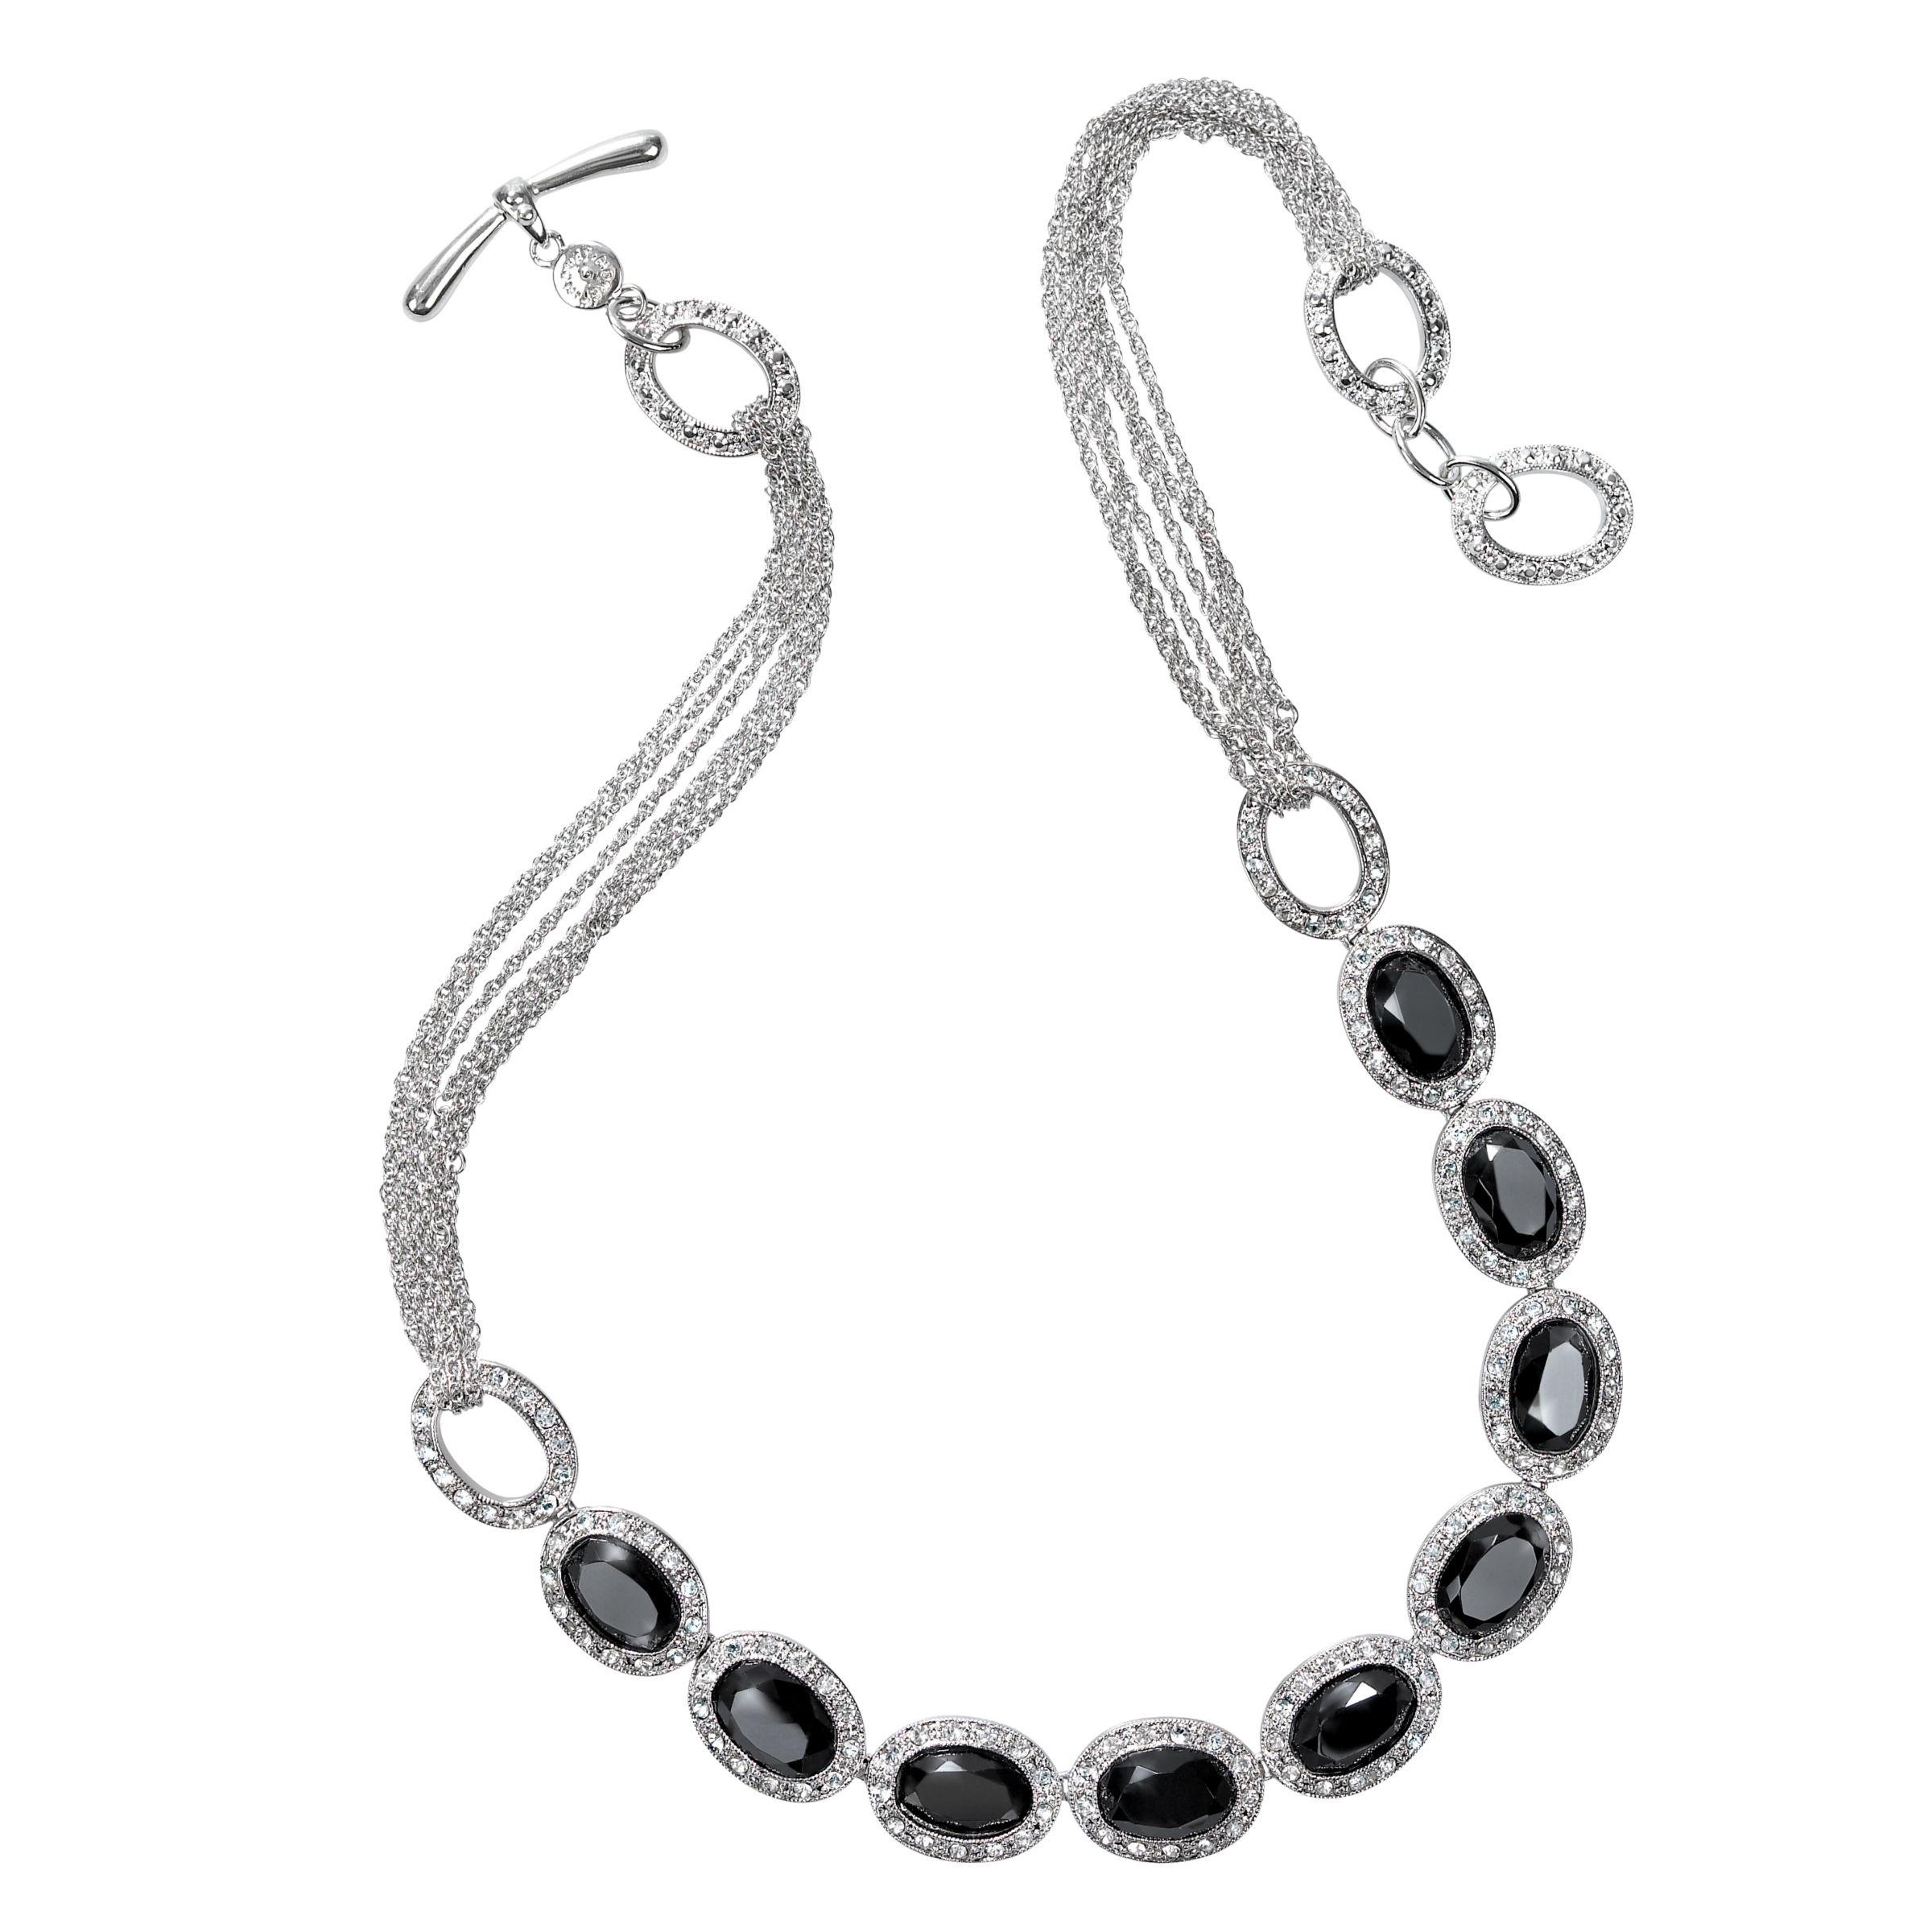 Monet Jet and Pave Cubic Zirconia Crystal Necklace